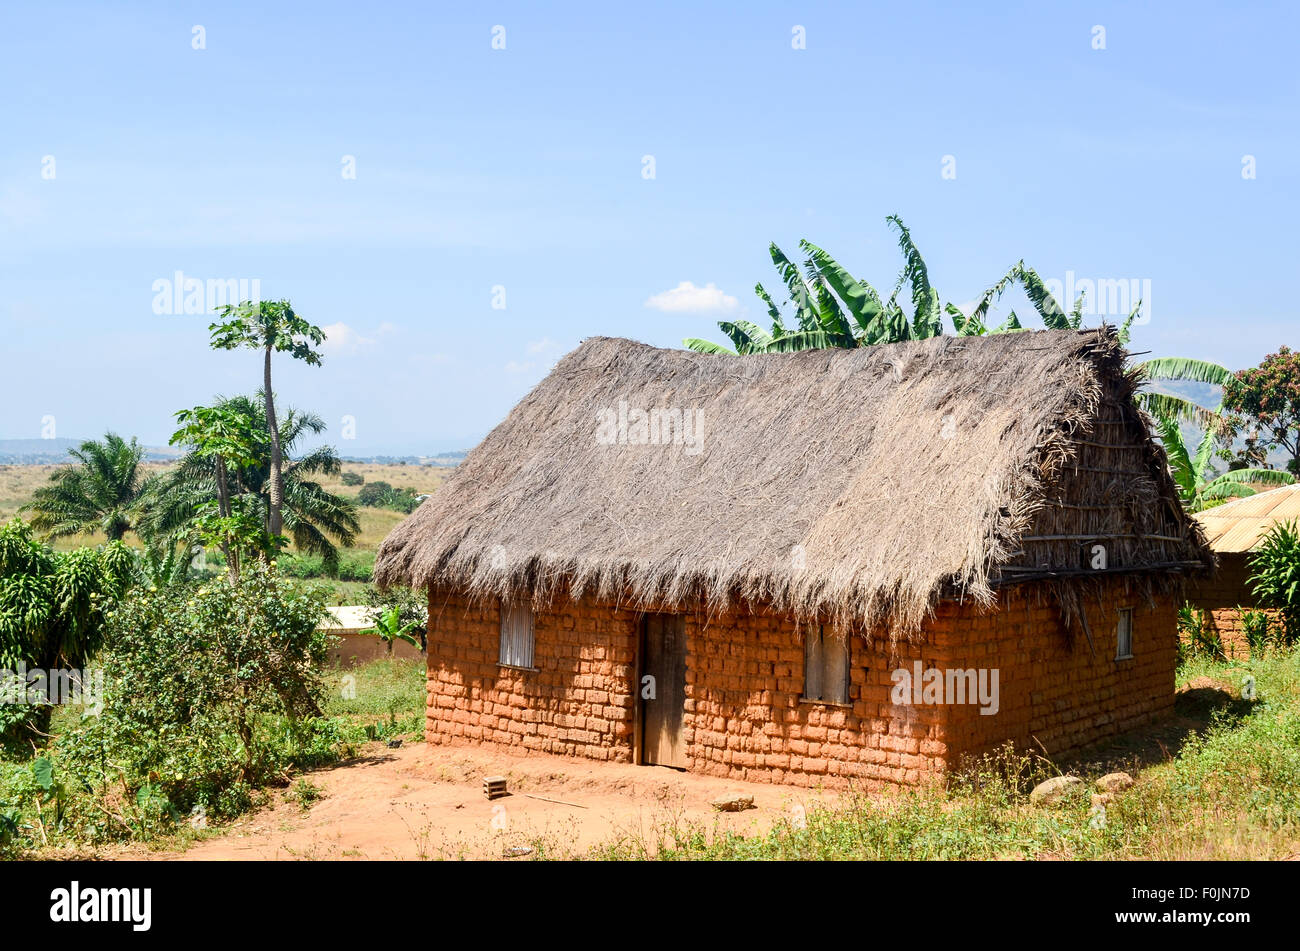 House of mud bricks in Cameroon - Stock Image